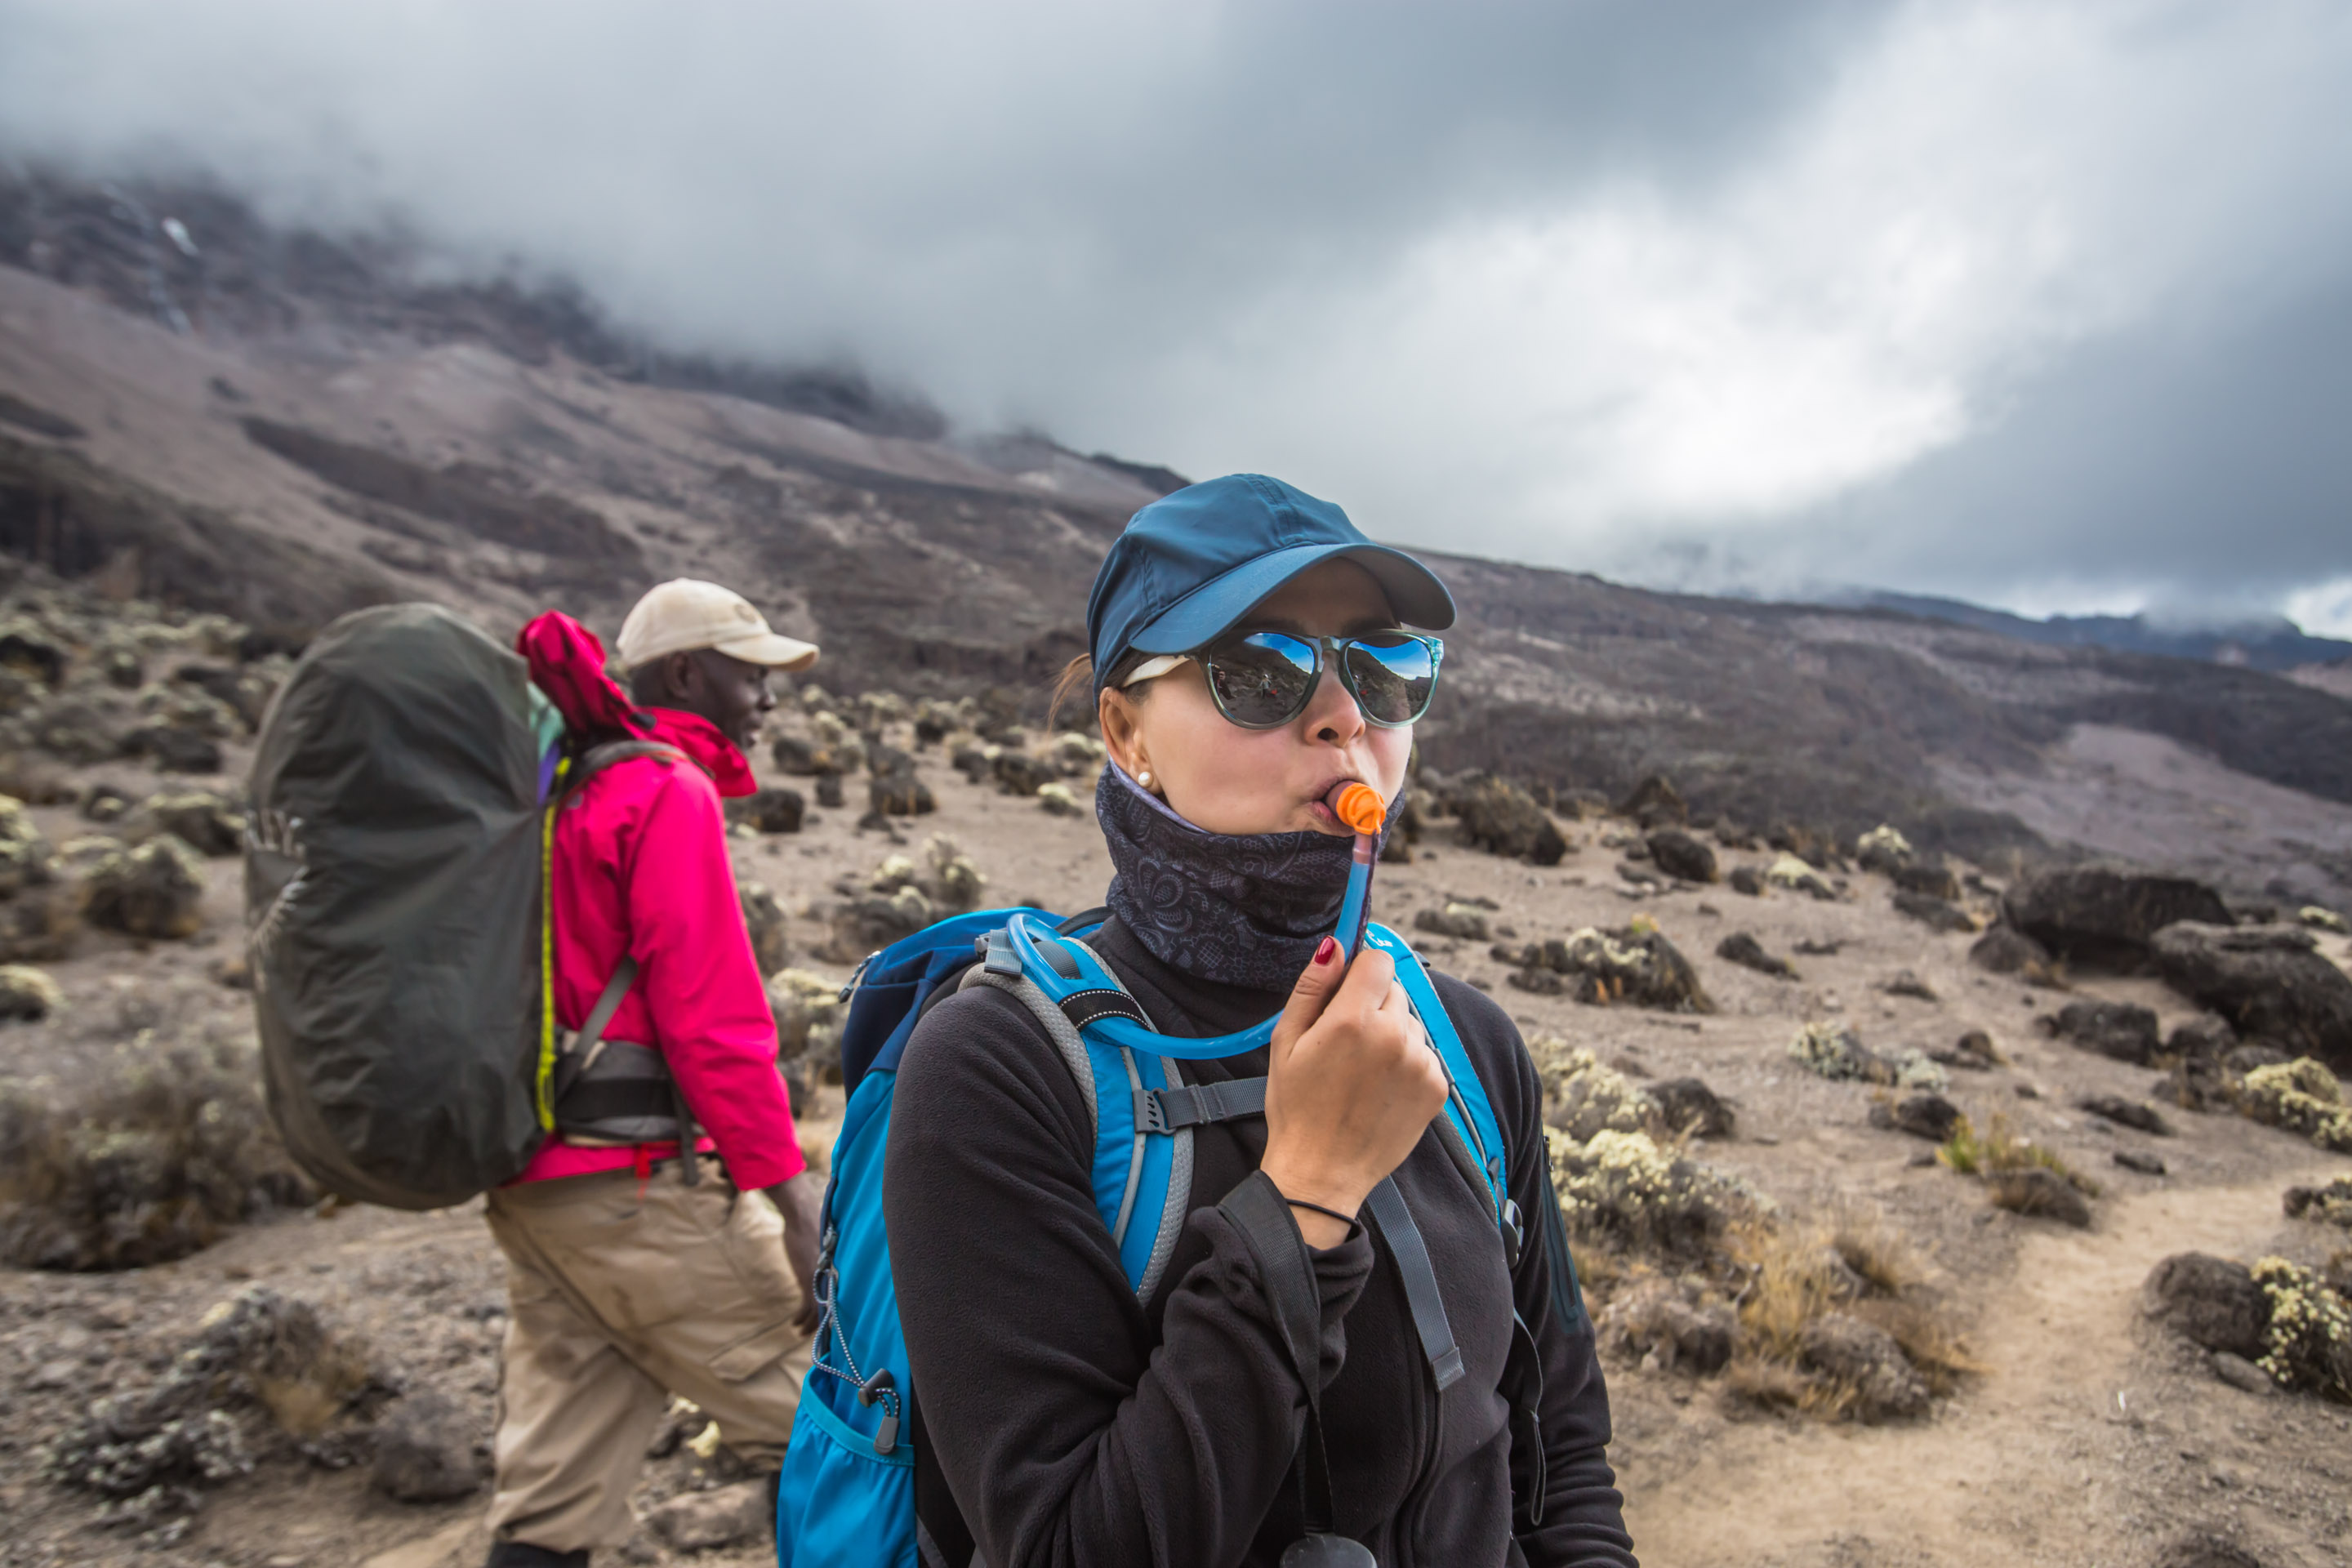 Staying hydrated on Kilimanjaro is very important